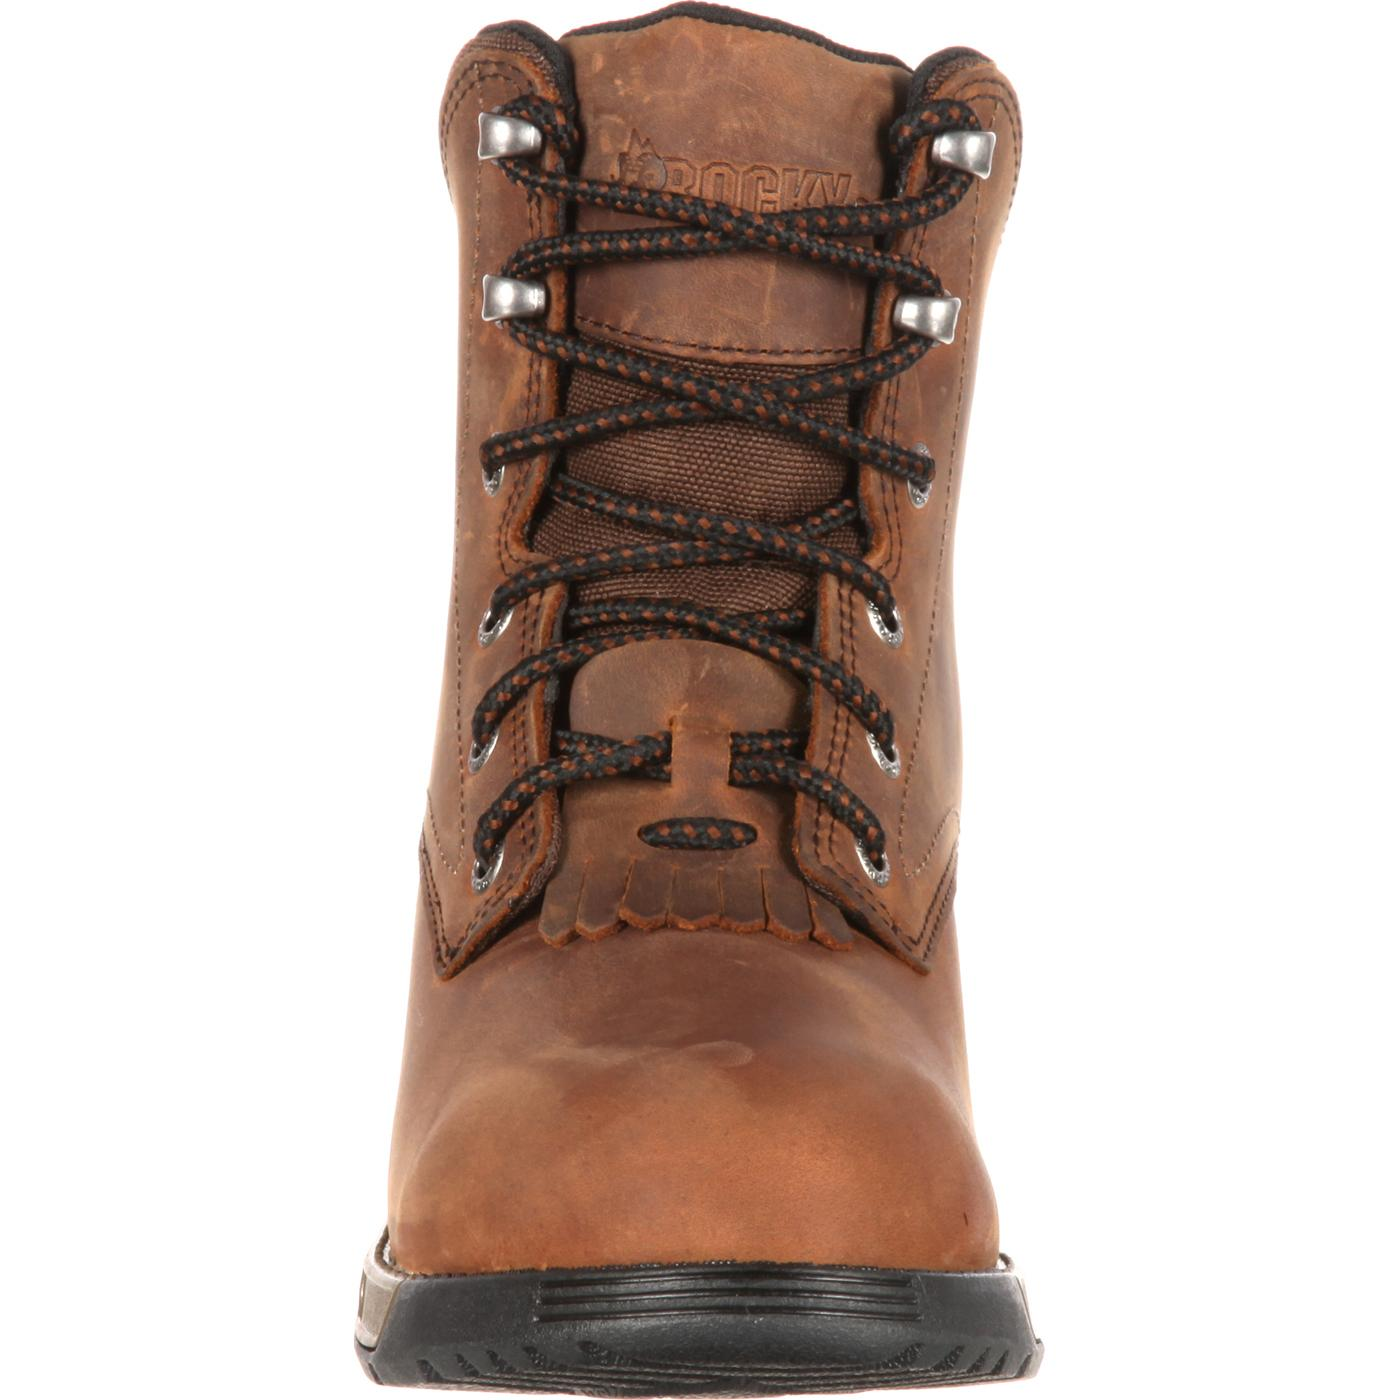 Womens stylish work boots